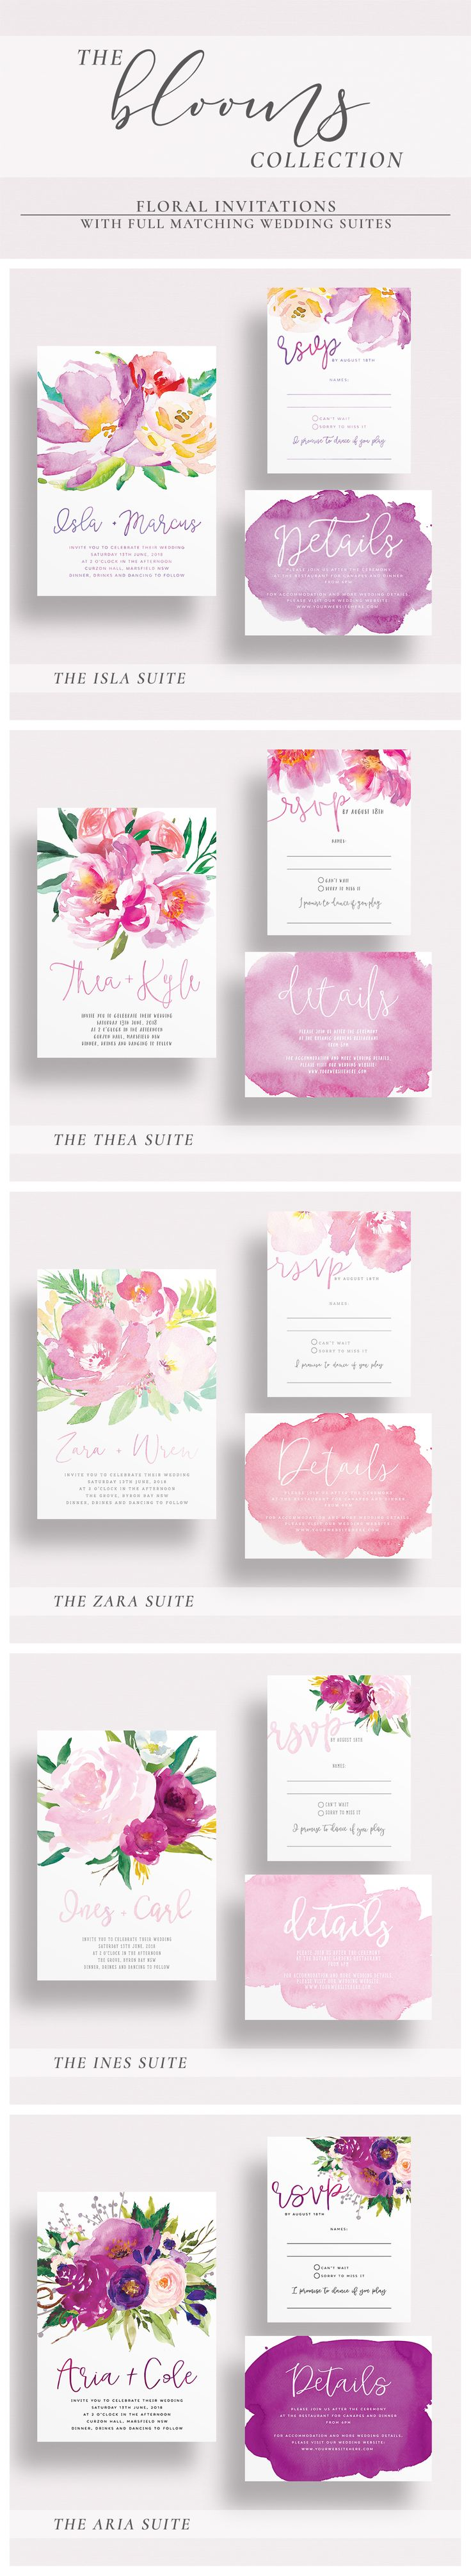 The Blooms Collection | Floral Watercolour Wedding Invitations | Watercolor Wedding Stationery | Bright Floral Invitation | Printed Wedding Stationery by Paper Minx Designs